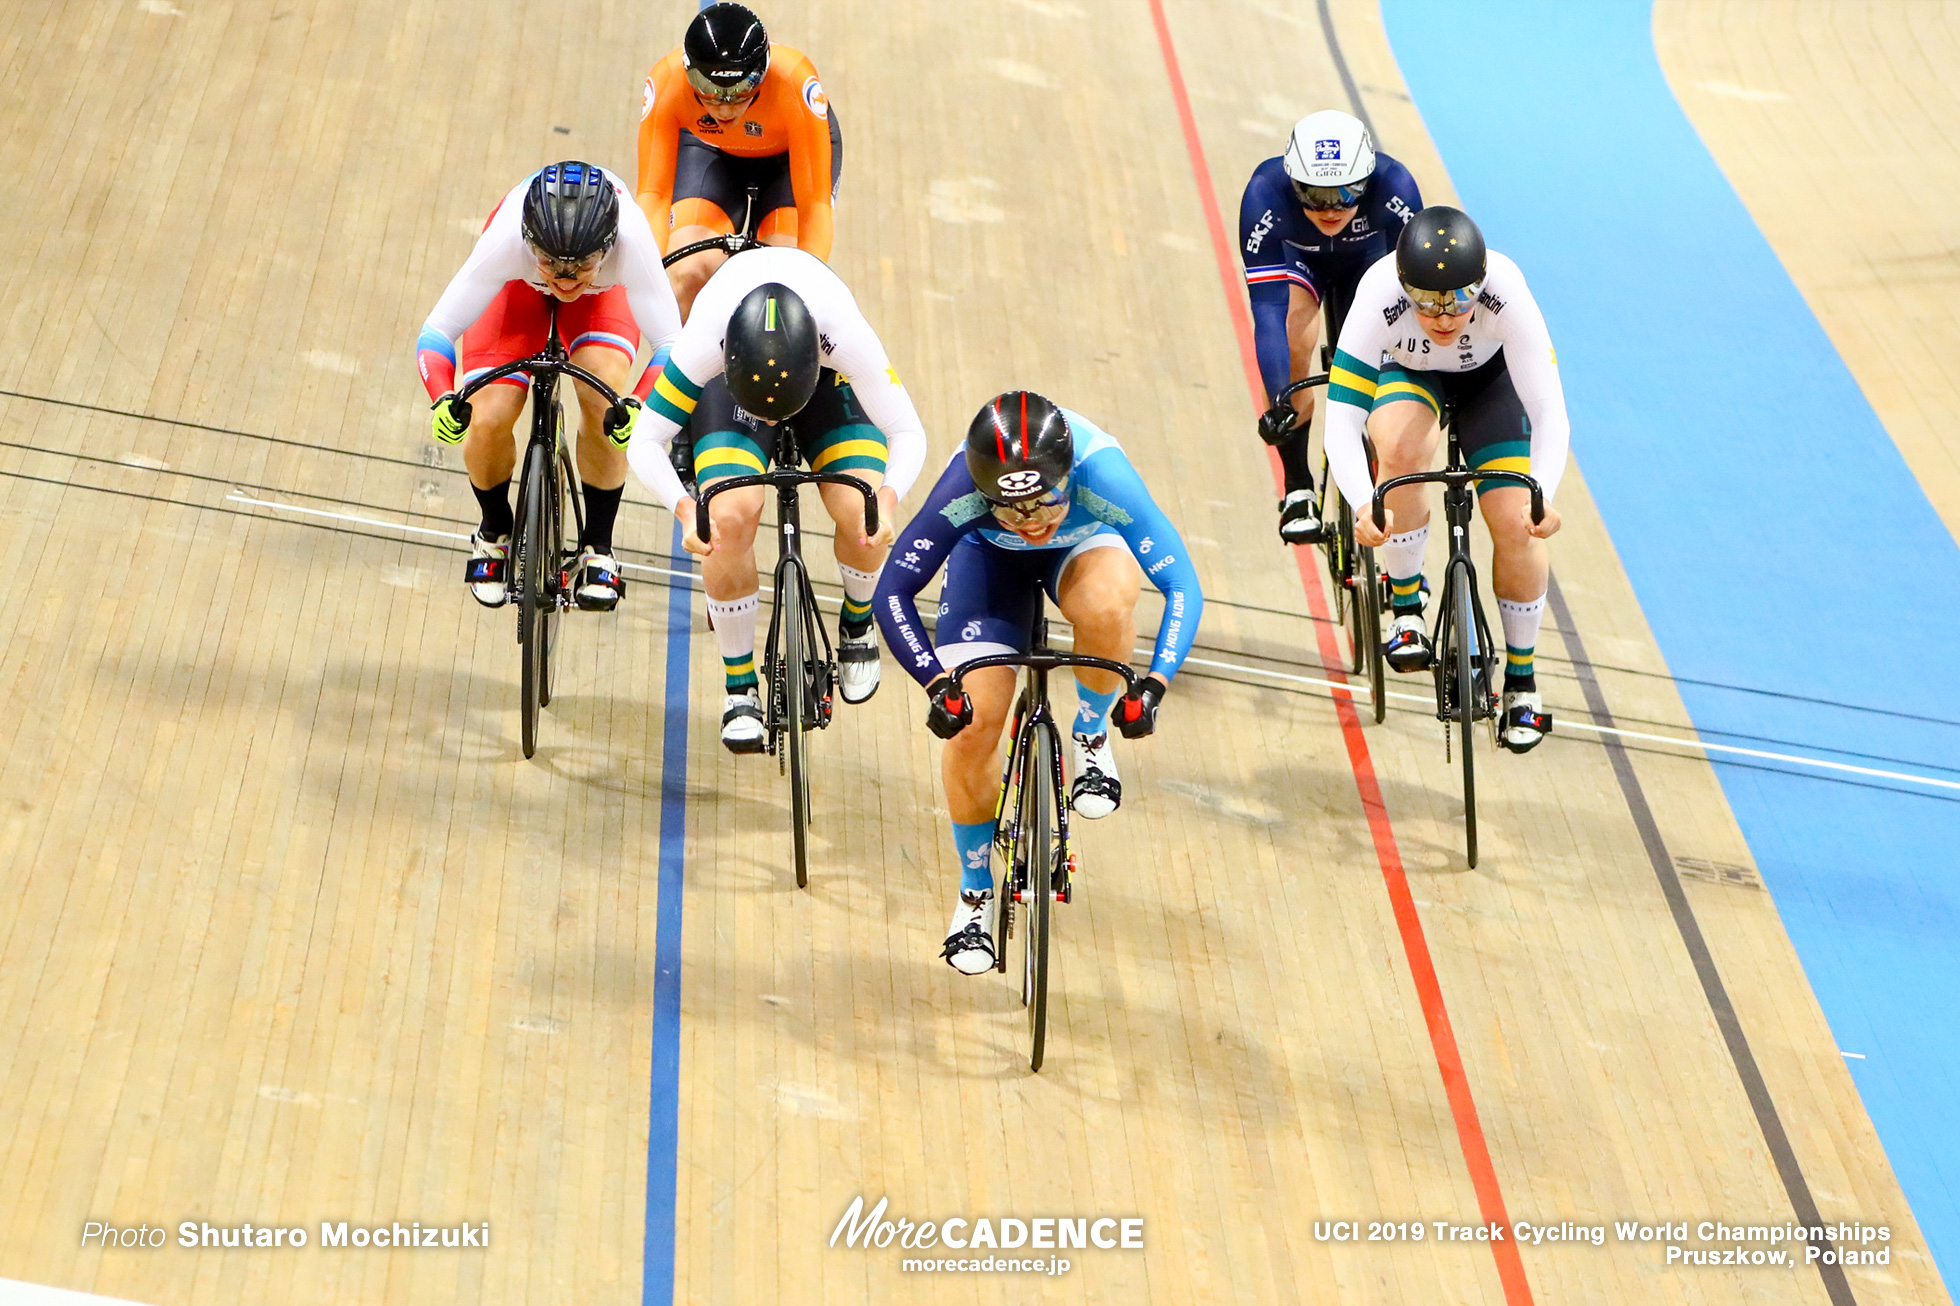 Women's Keirin Final / 2019 Track Cycling World Championships Pruszków, Poland